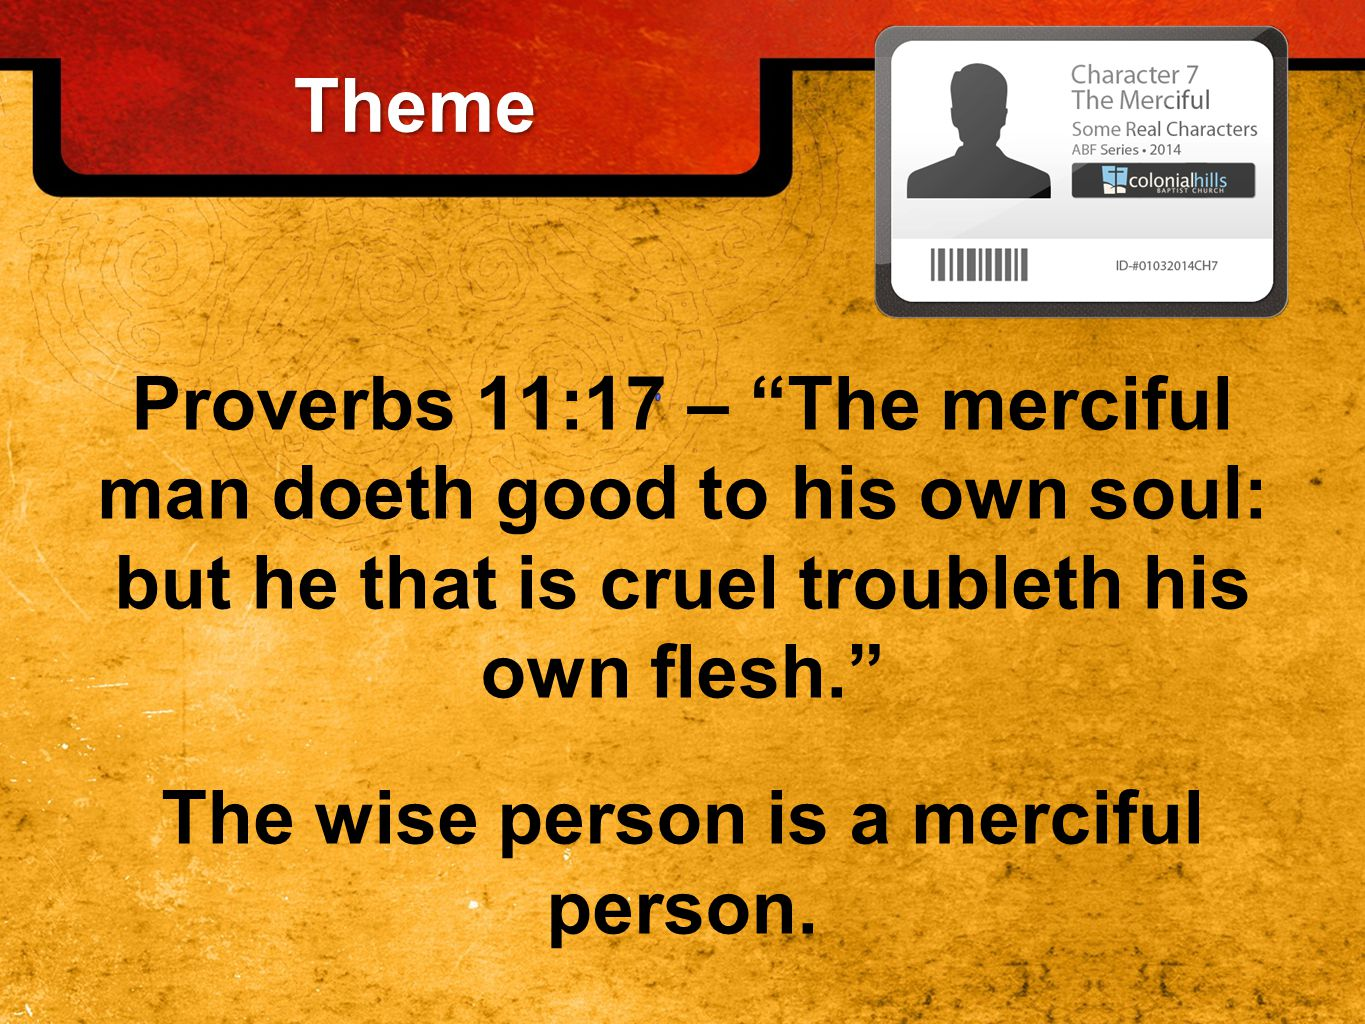 The Character of the Merciless Proverbs 12:10 says, A righteous man regardeth the life of his beast: but the tender mercies of the wicked are cruel. In essence, the cruel or merciless man shows no value of life.